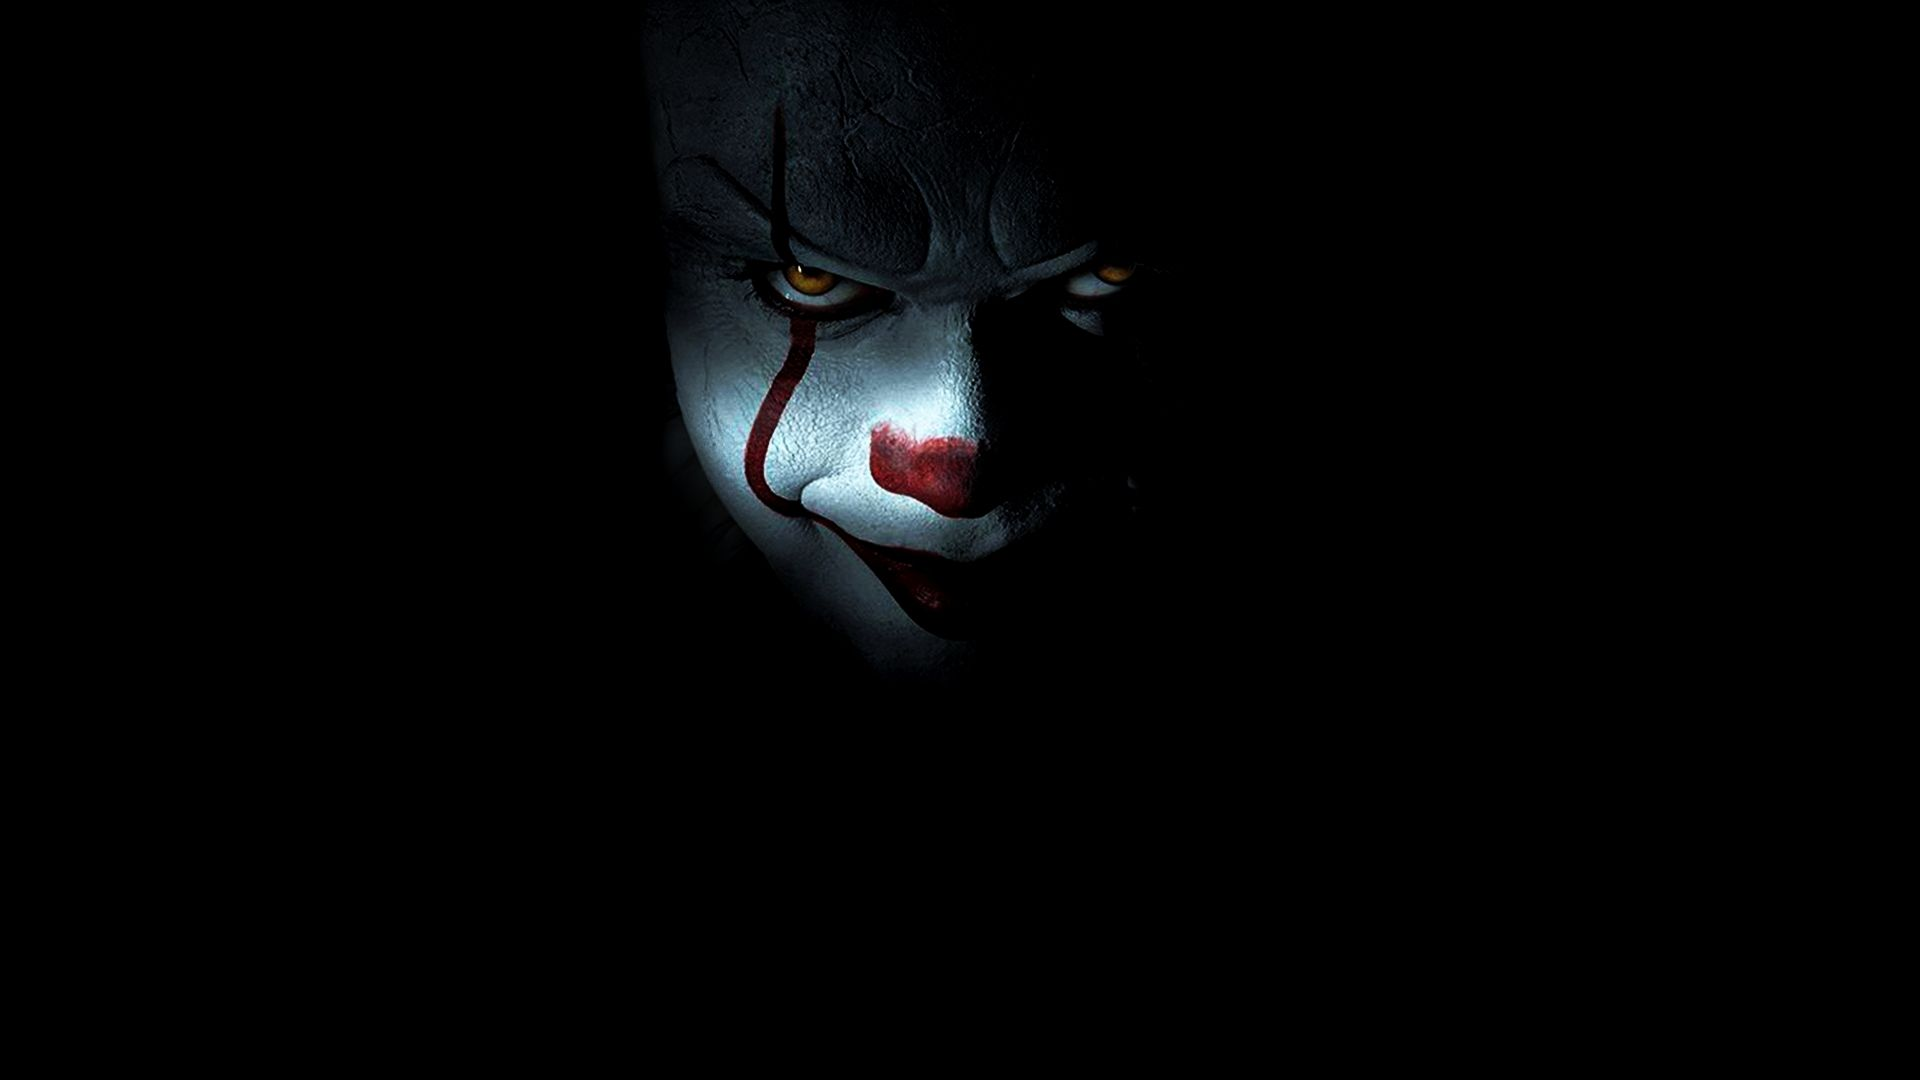 10 Best Pennywise The Clown Wallpaper Full Hd 1080p For Pc Background Scary Wallpaper Pennywise The Clown Halloween Wallpaper